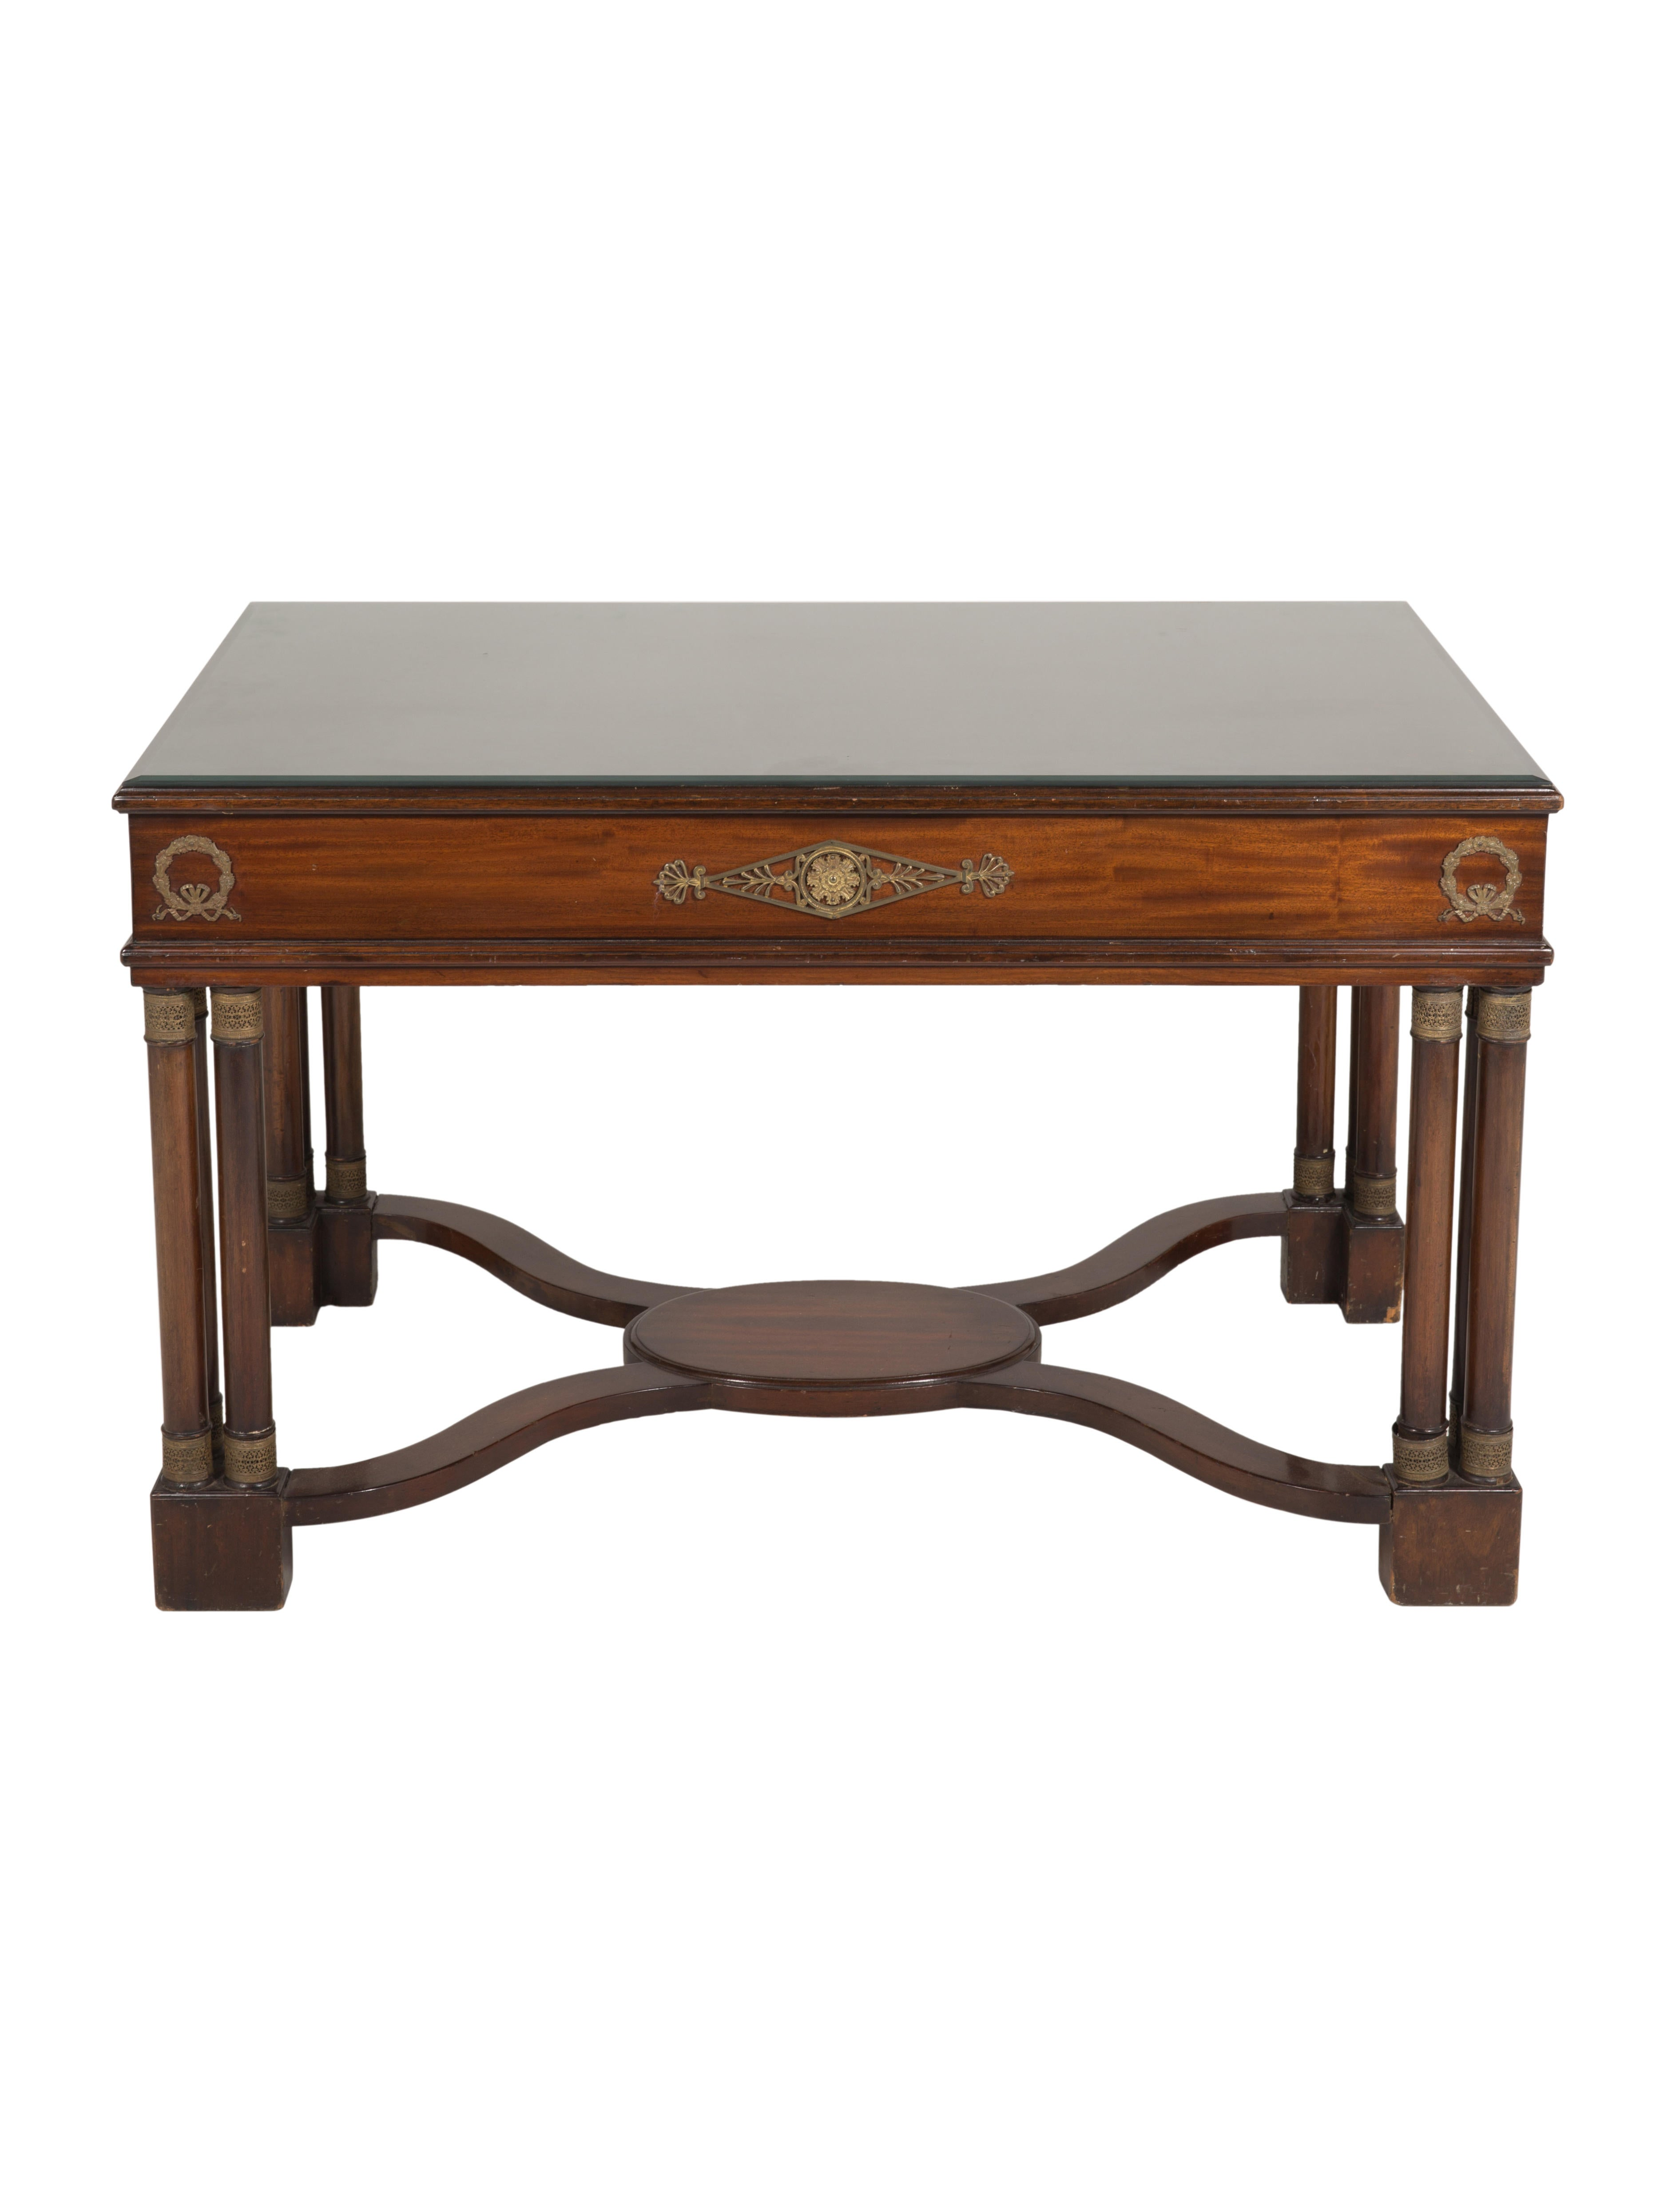 Furniture french 19th century mahogany desk furniture for French furniture